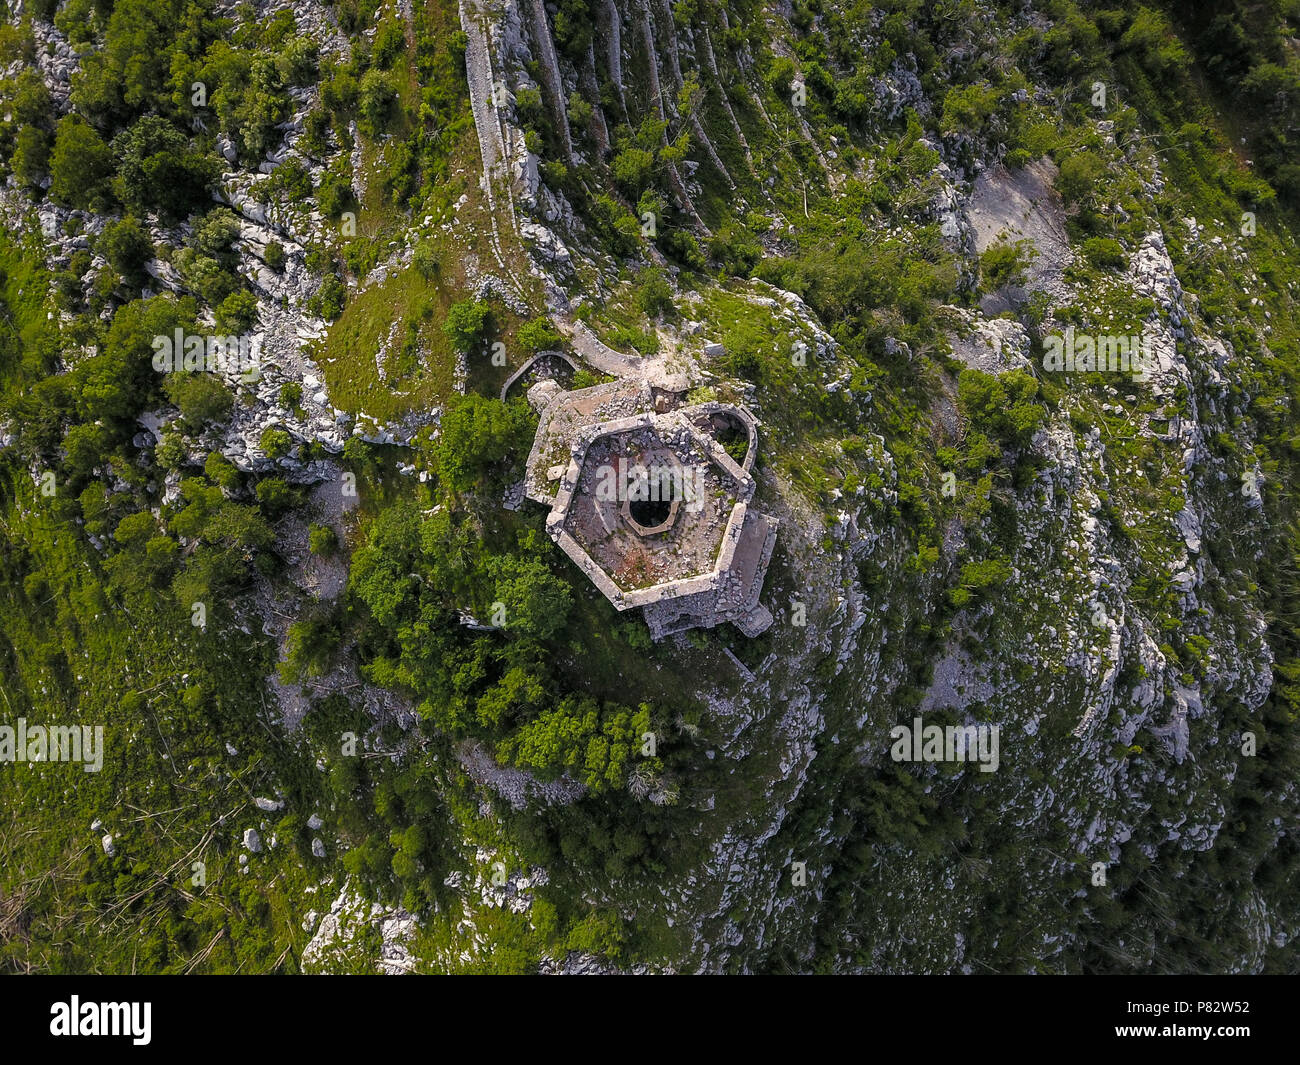 Fort Stražnik within the Orjen Mountain is a former fortification of the Austro-Hungarian Empire located in Montenegro. - Stock Image